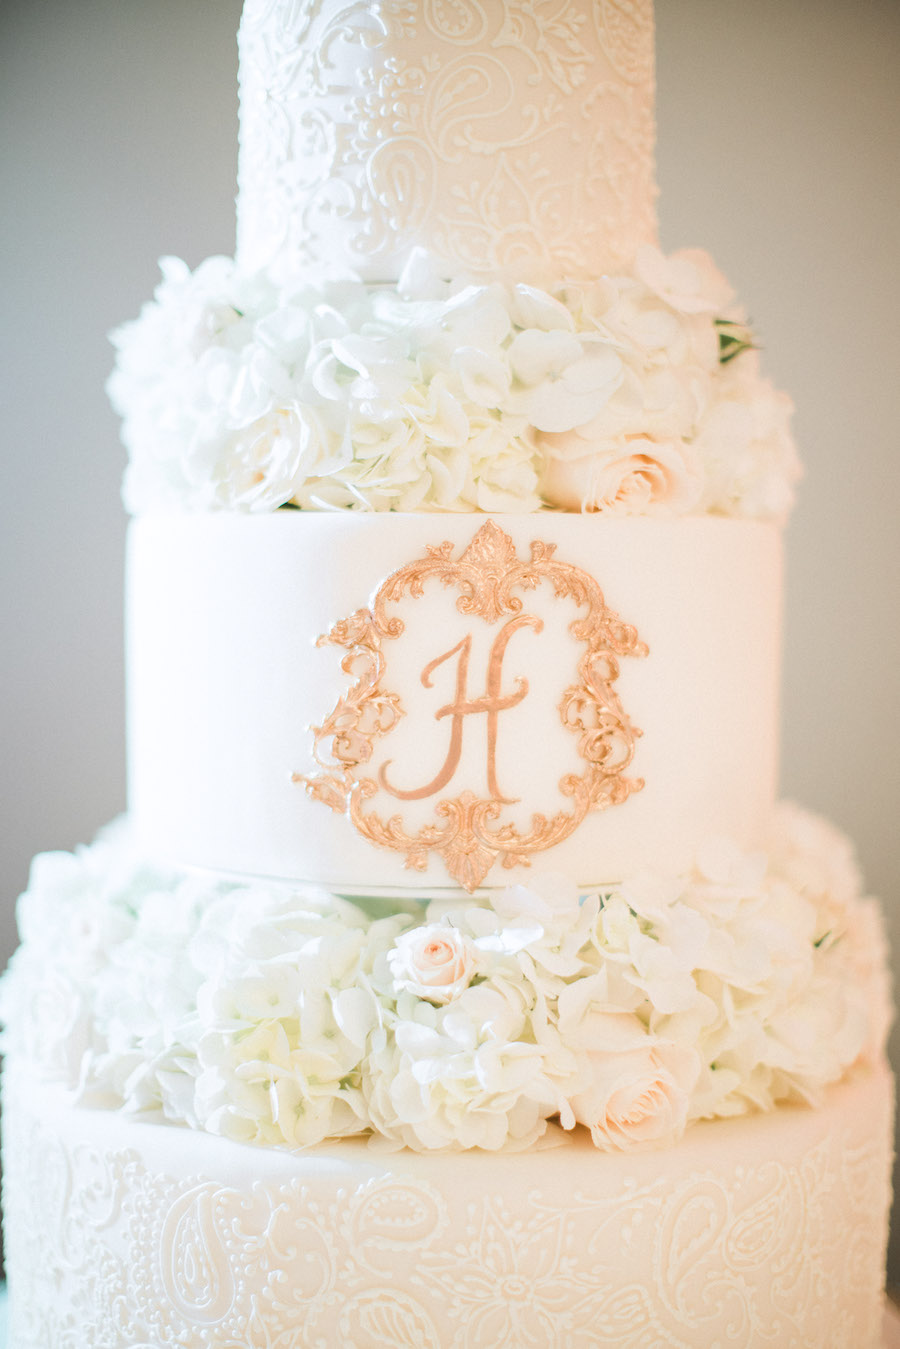 Traditional Three Tier Round White Wedding Cake with Ivory Roses and Hydrangea and Elegant Gold Monogram